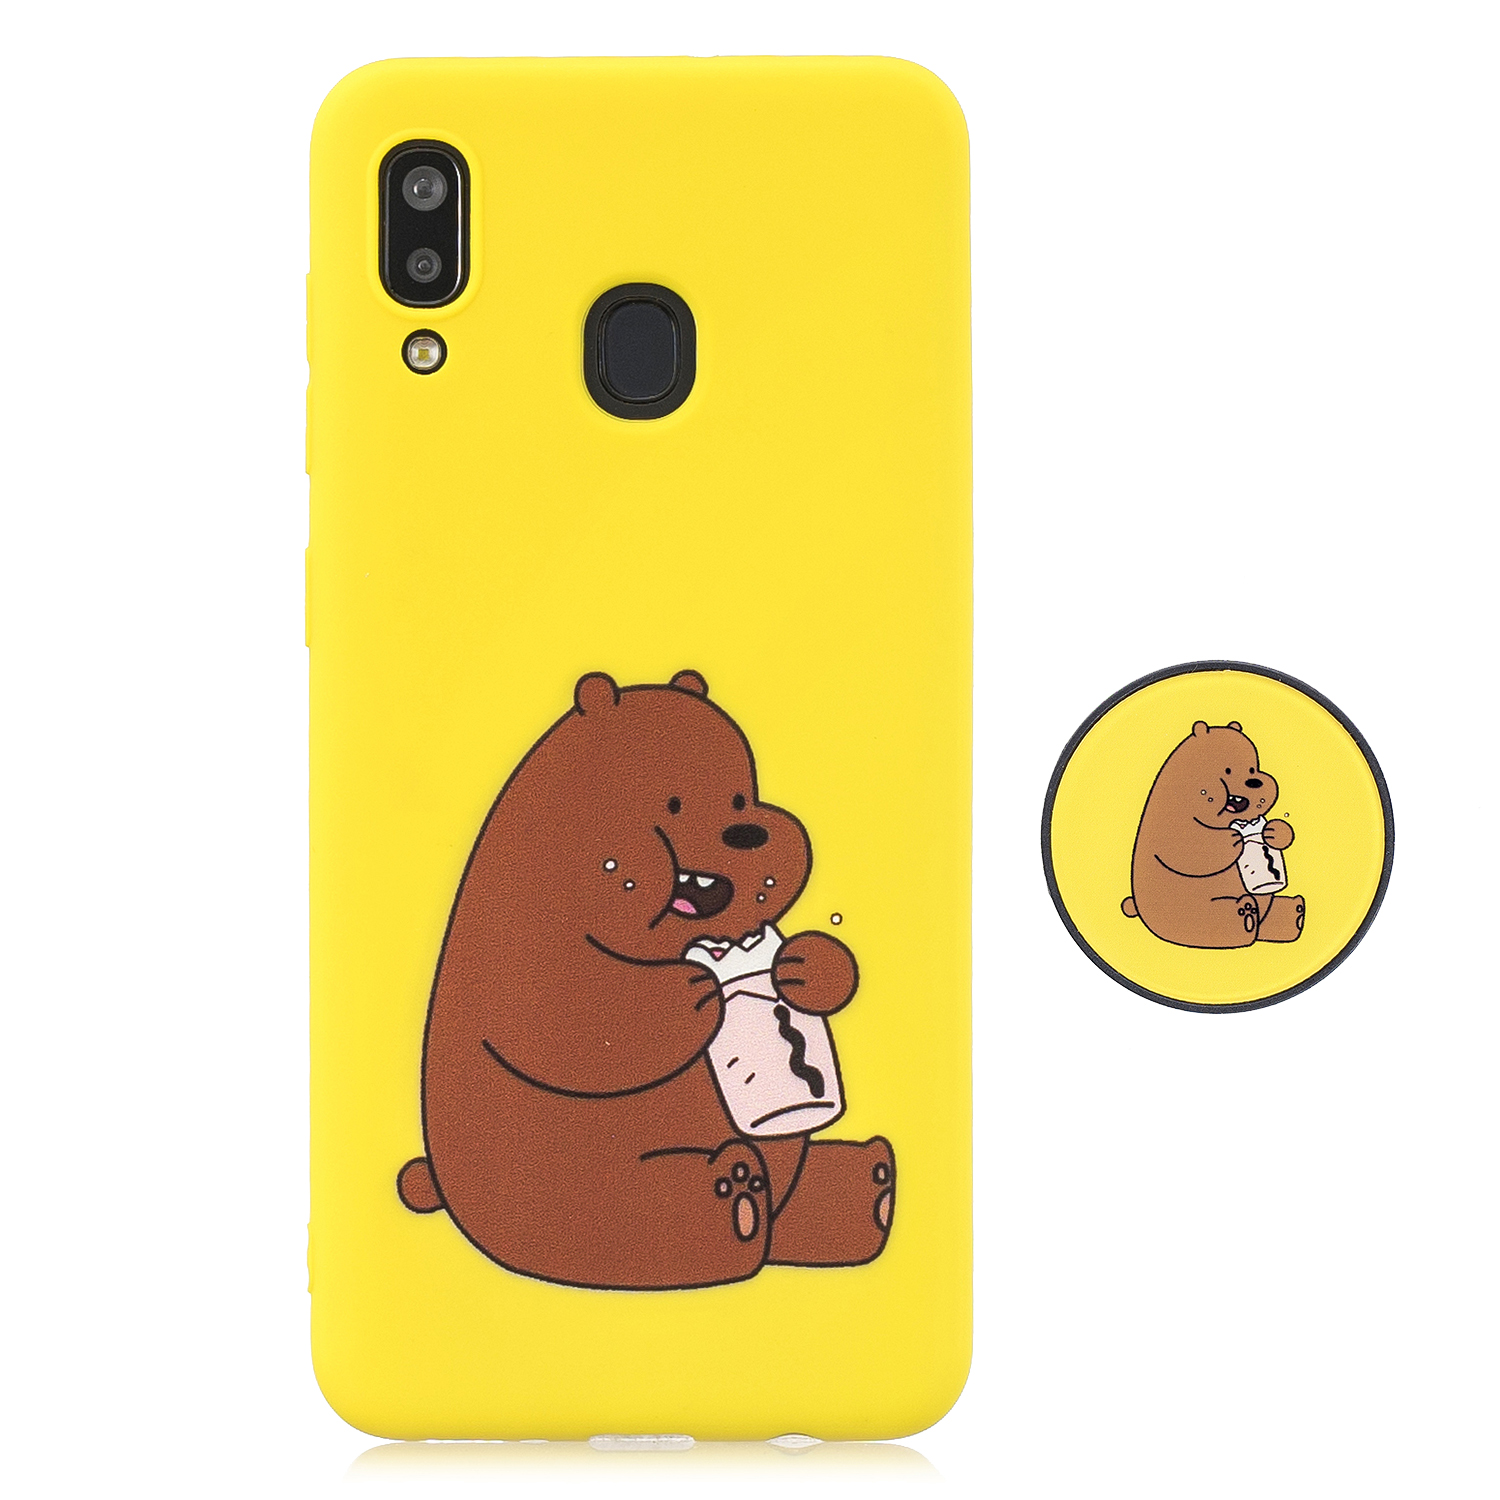 For Samsung A30 A20 TPU Full Cover Cartoon Pattern Solid Color Protective Phone Case with Adjustable Bracket 8